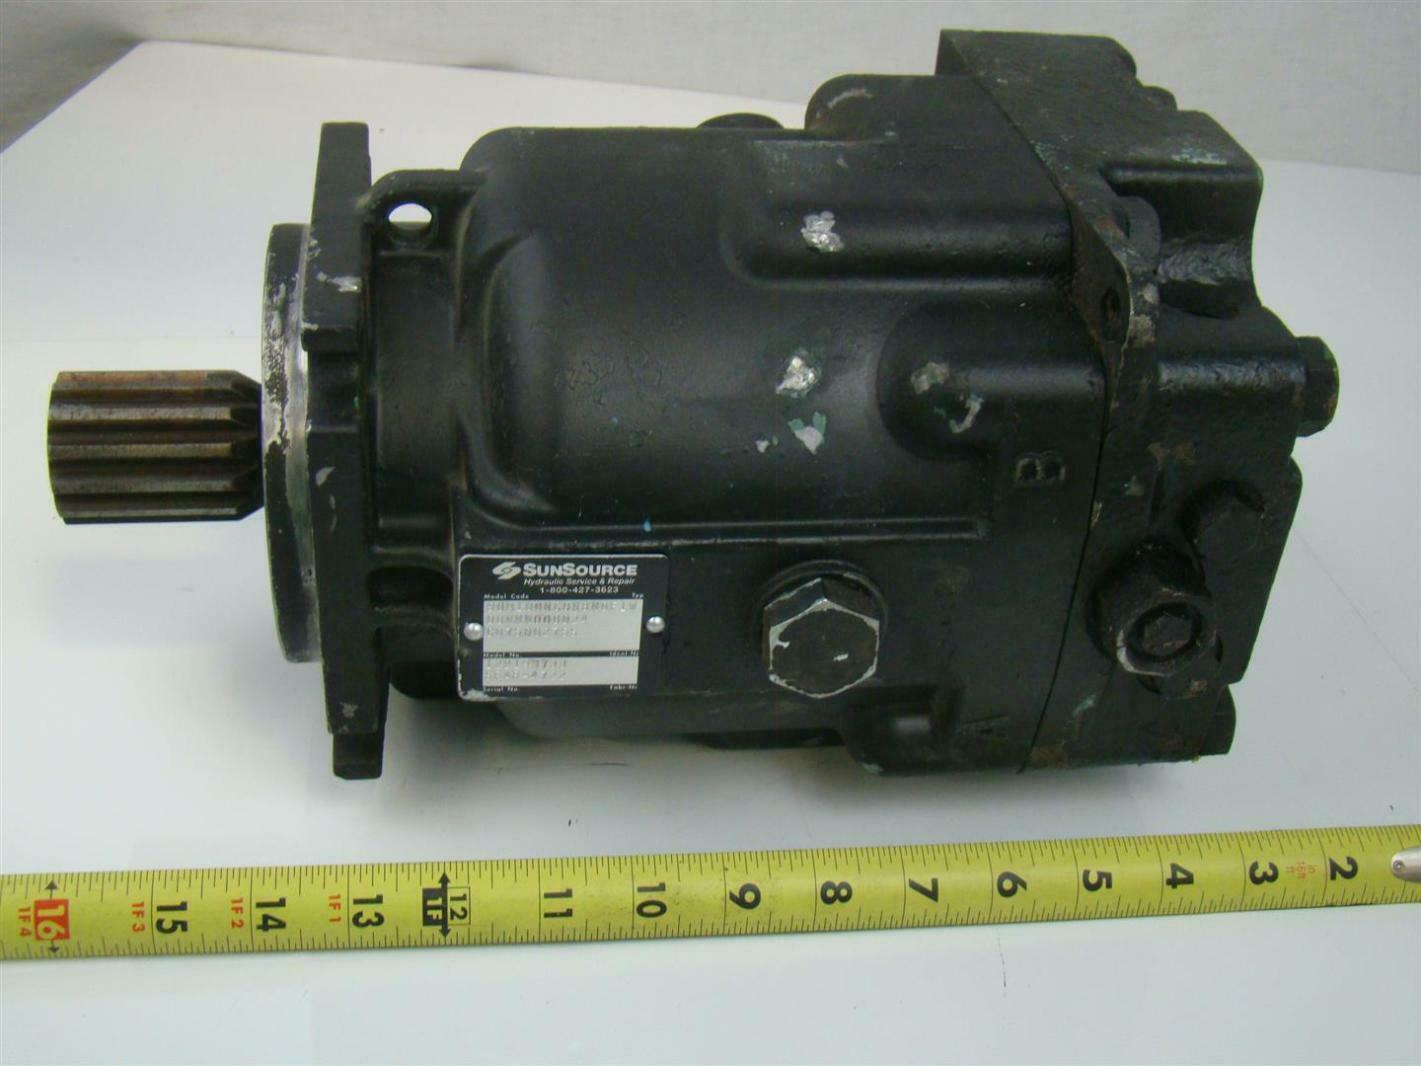 SAUER DANFOSS AXIAL PISTON HYDRAULIC MOTOR 1.72 SHAFT 90M100NC0N8N0F1